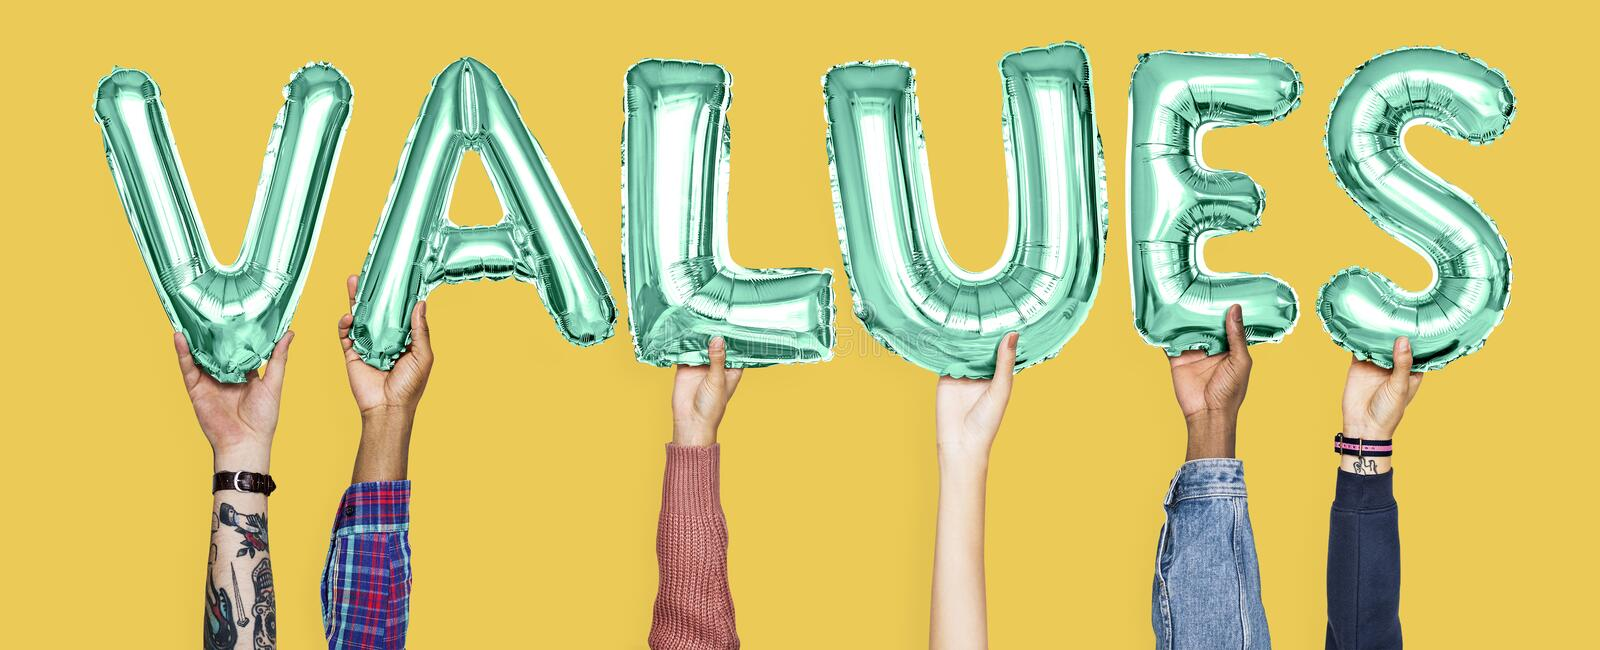 Hands holding values word in balloon letters royalty free stock photography